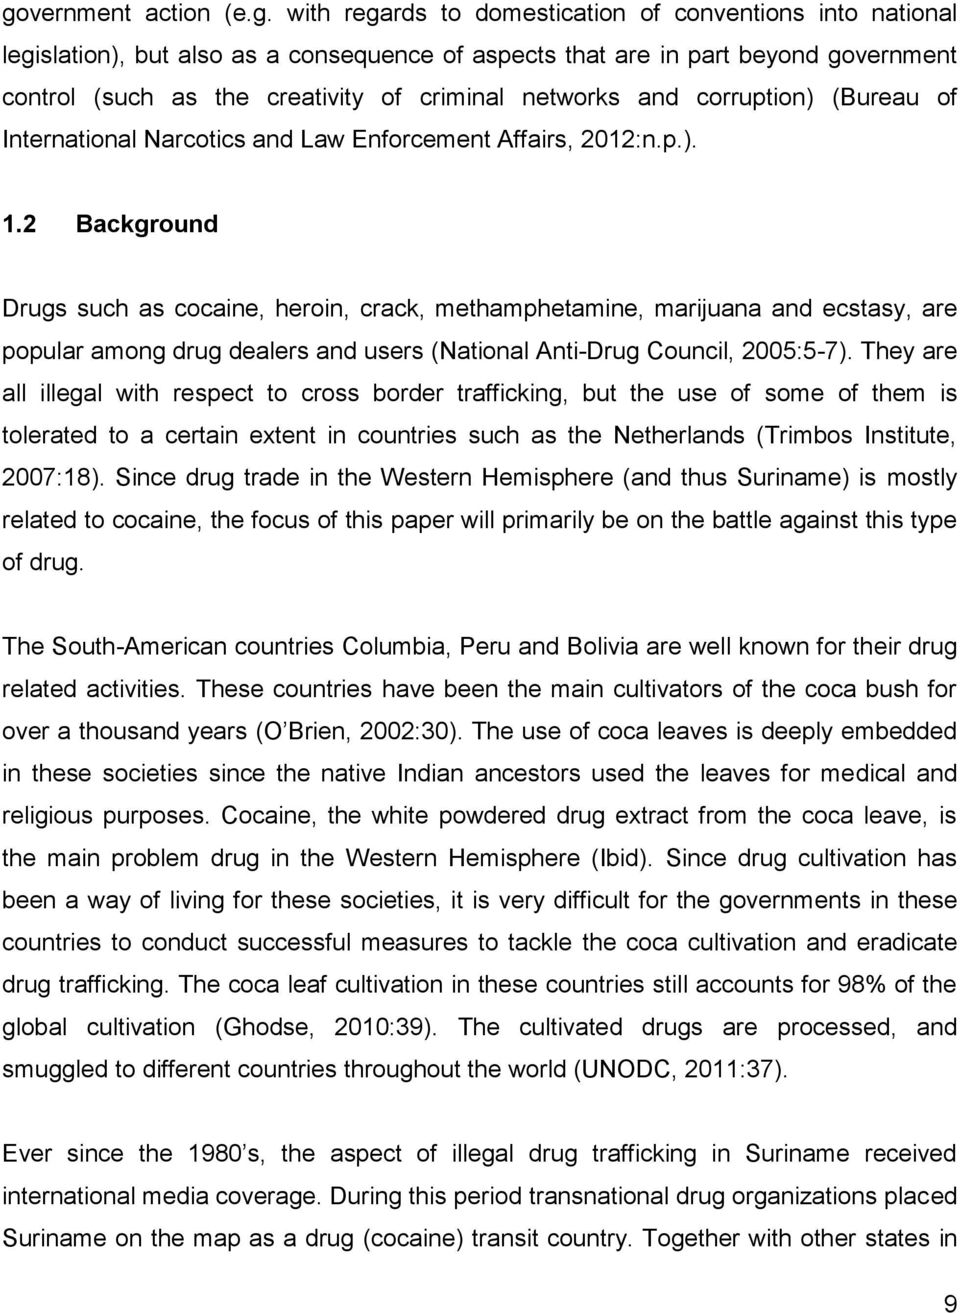 2 Background Drugs such as cocaine, heroin, crack, methamphetamine, marijuana and ecstasy, are popular among drug dealers and users (National Anti-Drug Council, 2005:5-7).